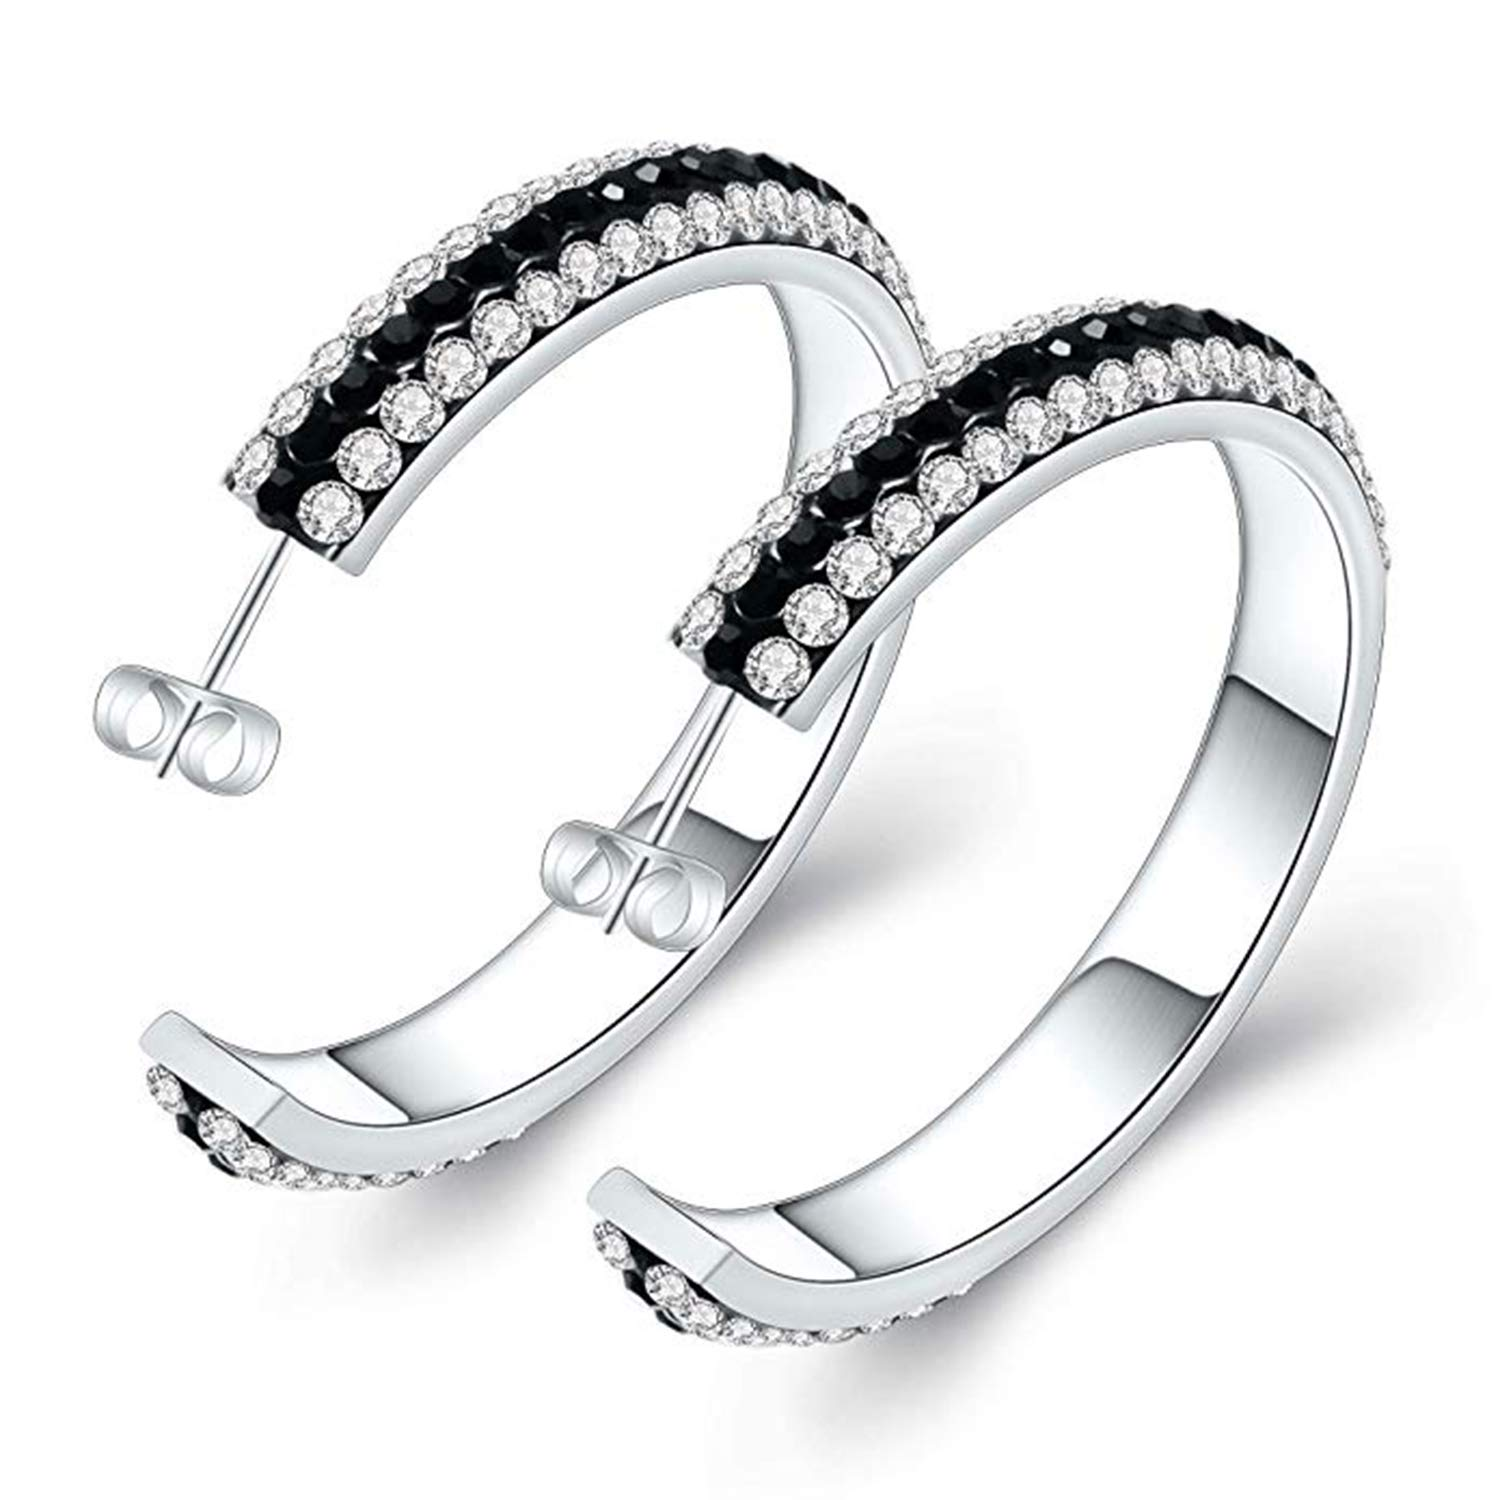 Party Wear Jewellery Suhana Jewellery Hoop Earrings Collections 14K White Gold Fn Black CZ for Girls Womens Daily